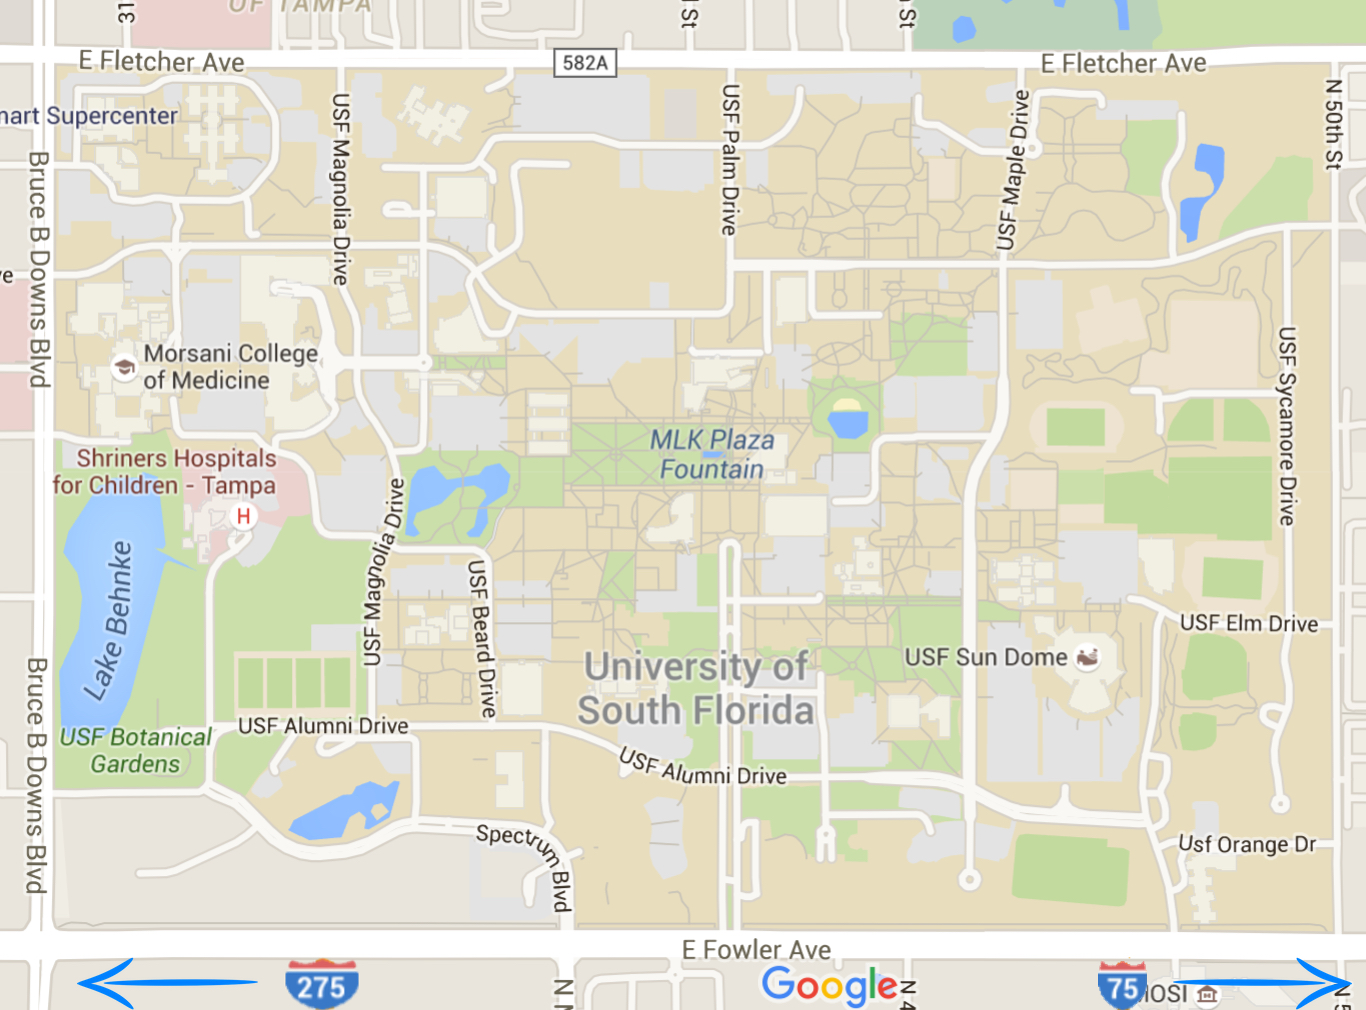 Map showing the University of South Florida's location